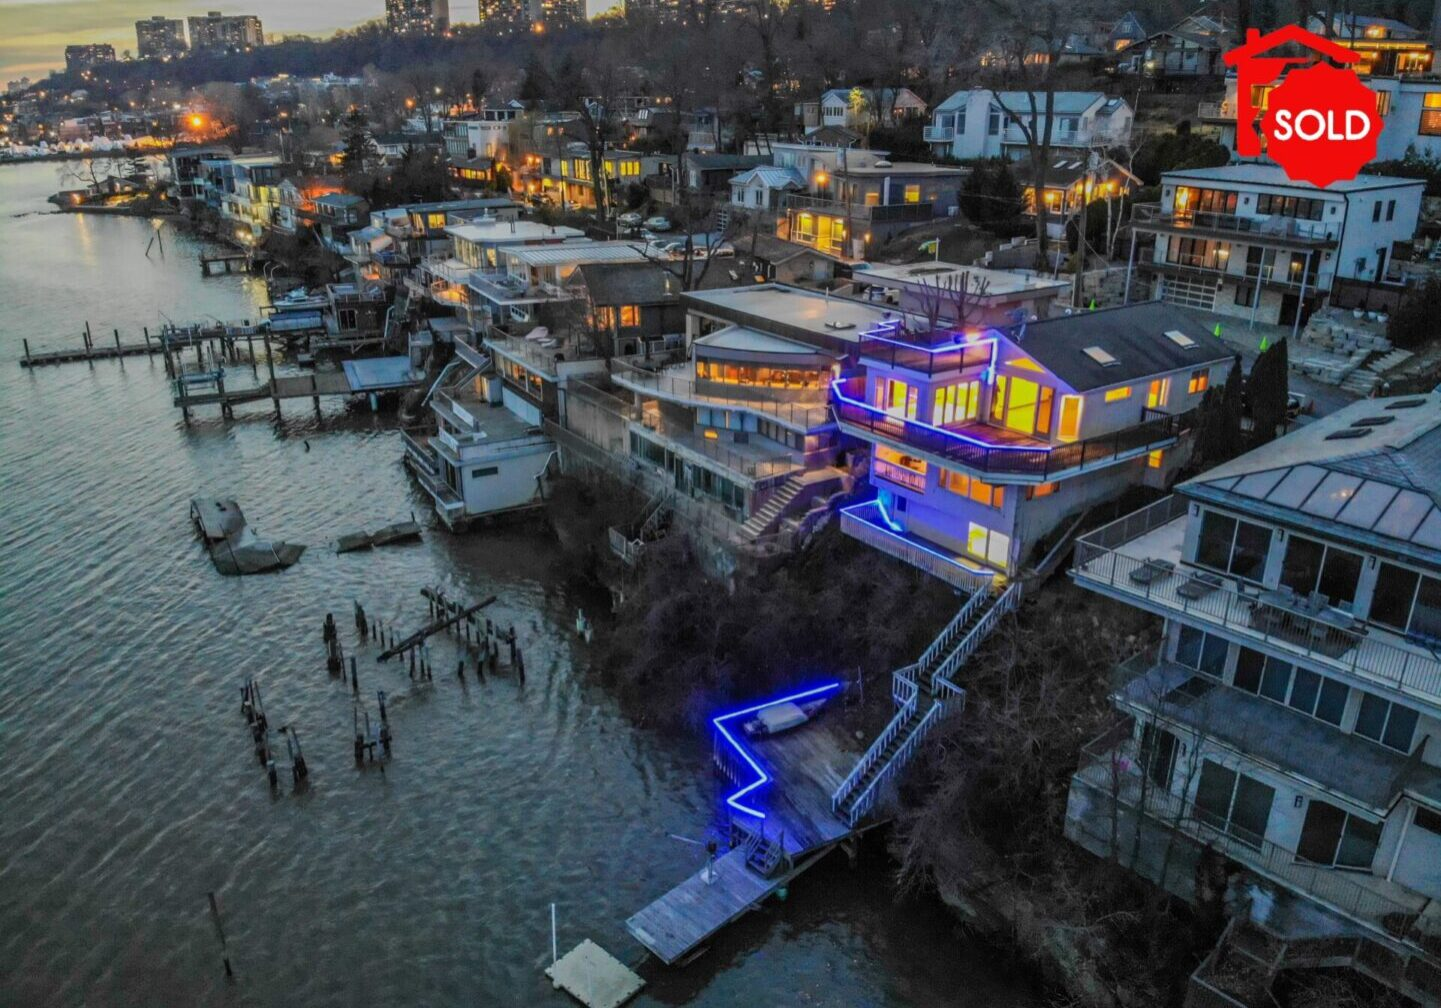 SOLD - 27 Shore Road Edgewater, NJ 07020 <br><br>$1,799,000